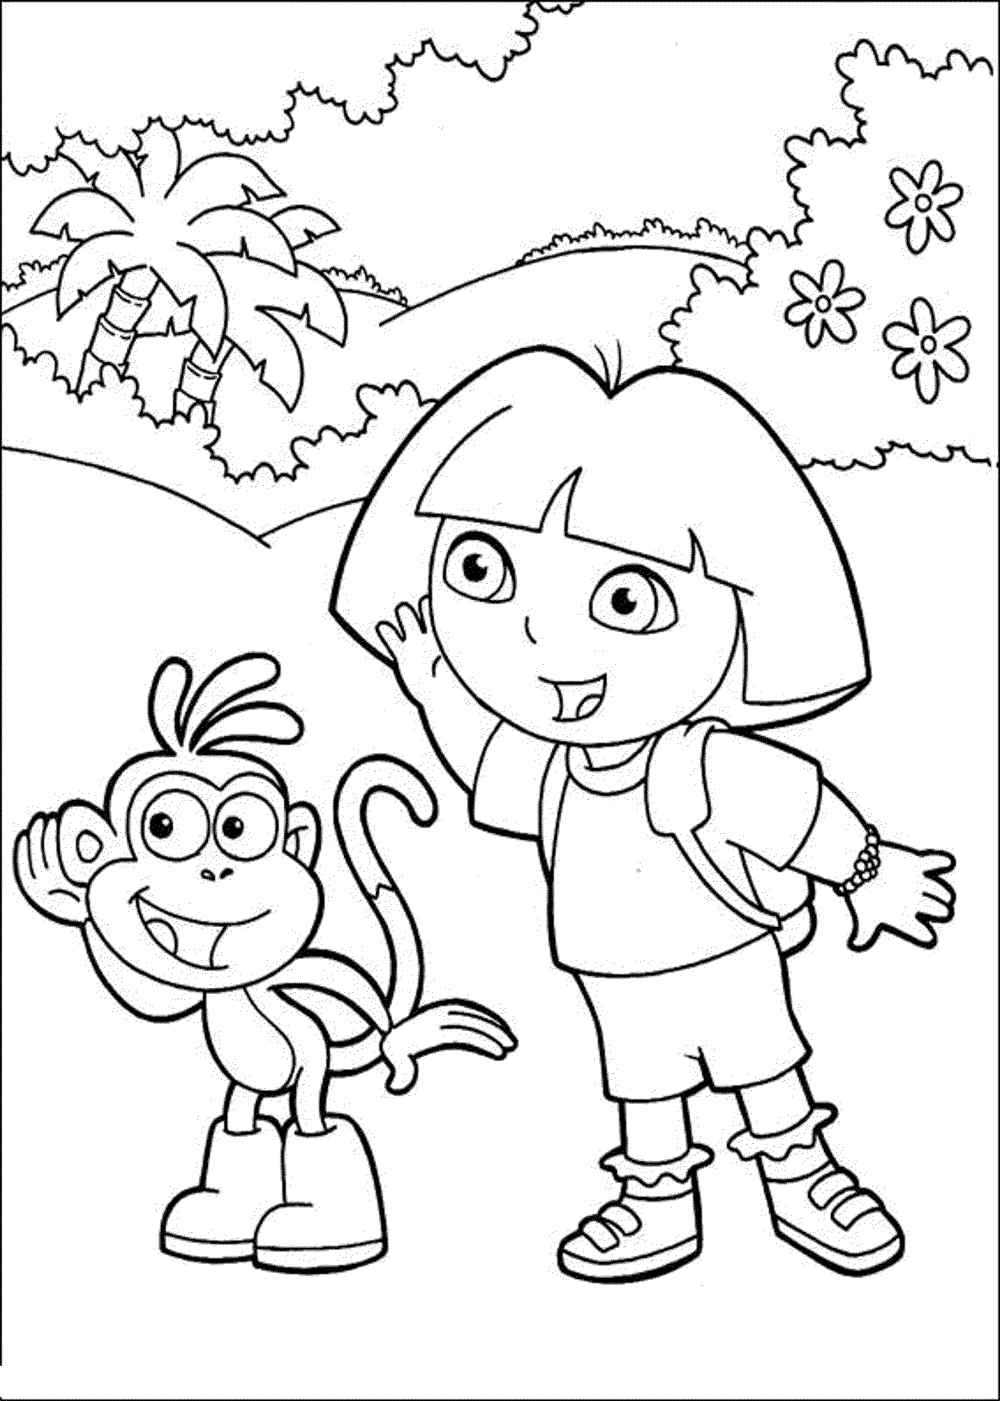 dora colouring pages printable print download dora coloring pages to learn new things colouring dora pages printable